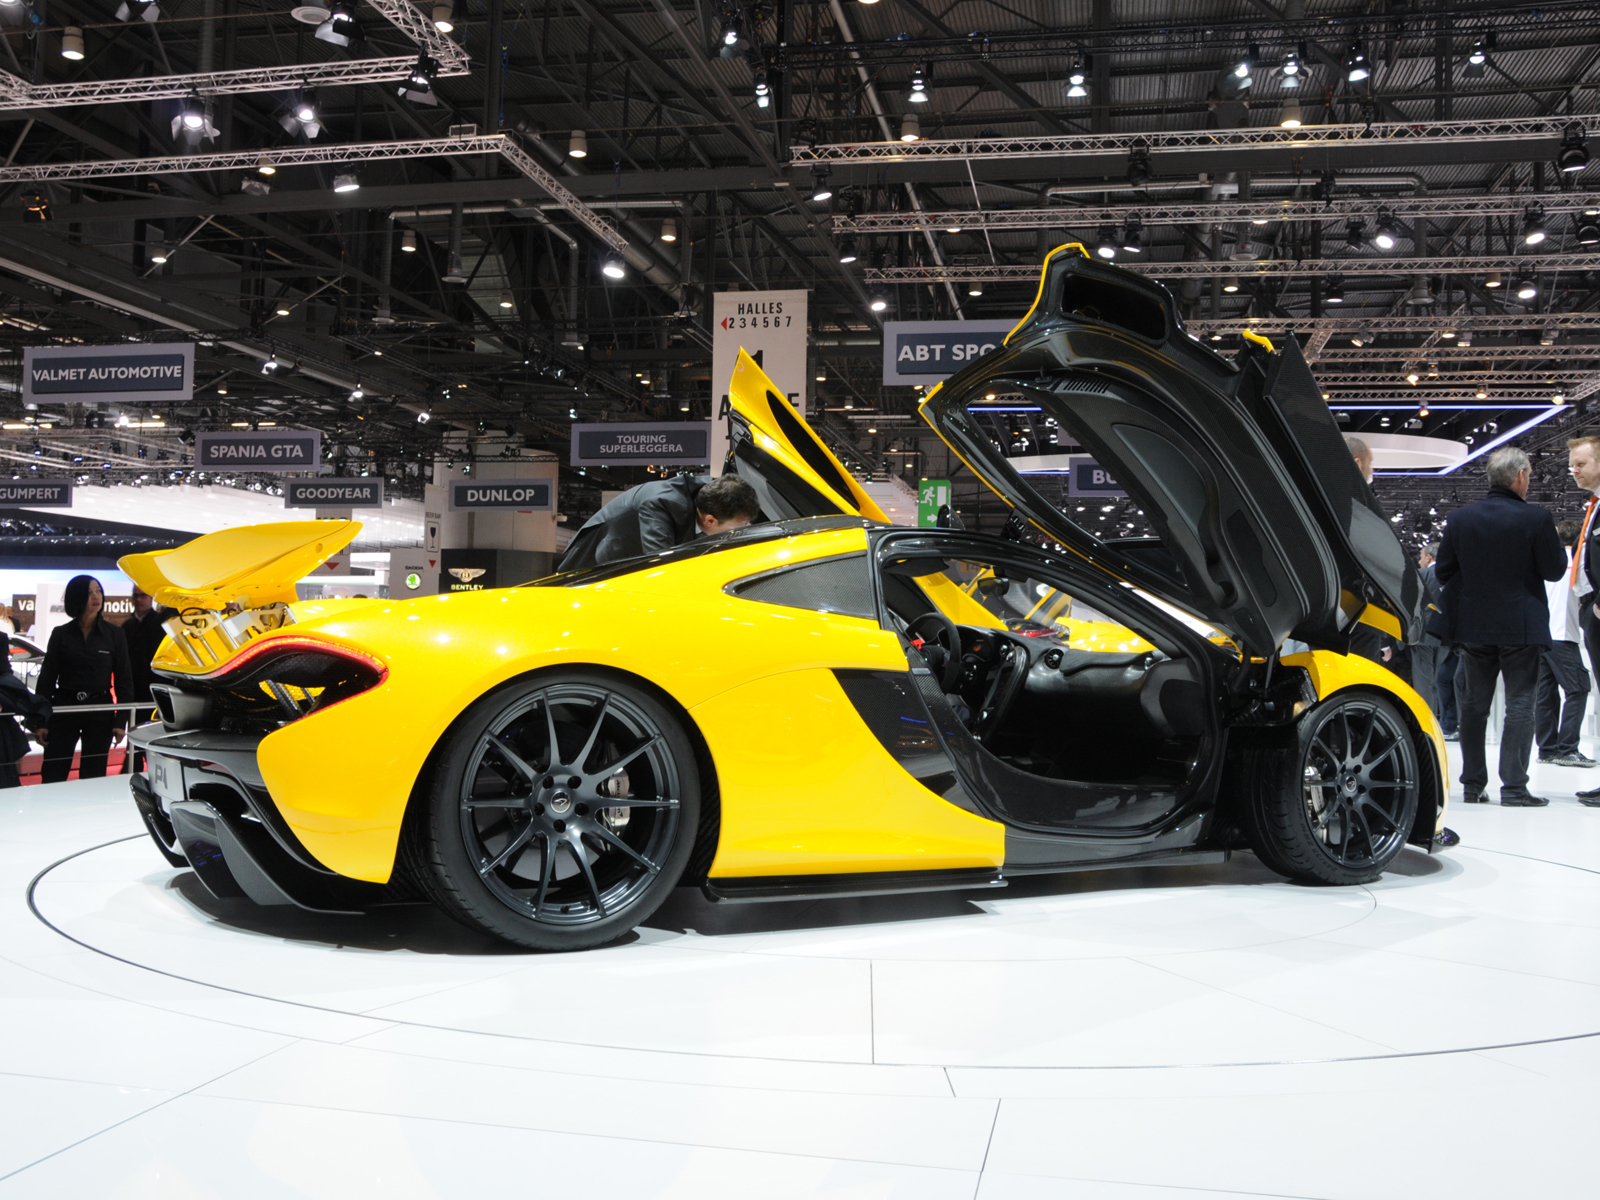 http://www.9to5carwallpapers.com/wp-content/uploads/2014/05/Yellow-2014-Mclaren-P1-in-Auto-Show-Wallpapers.jpg